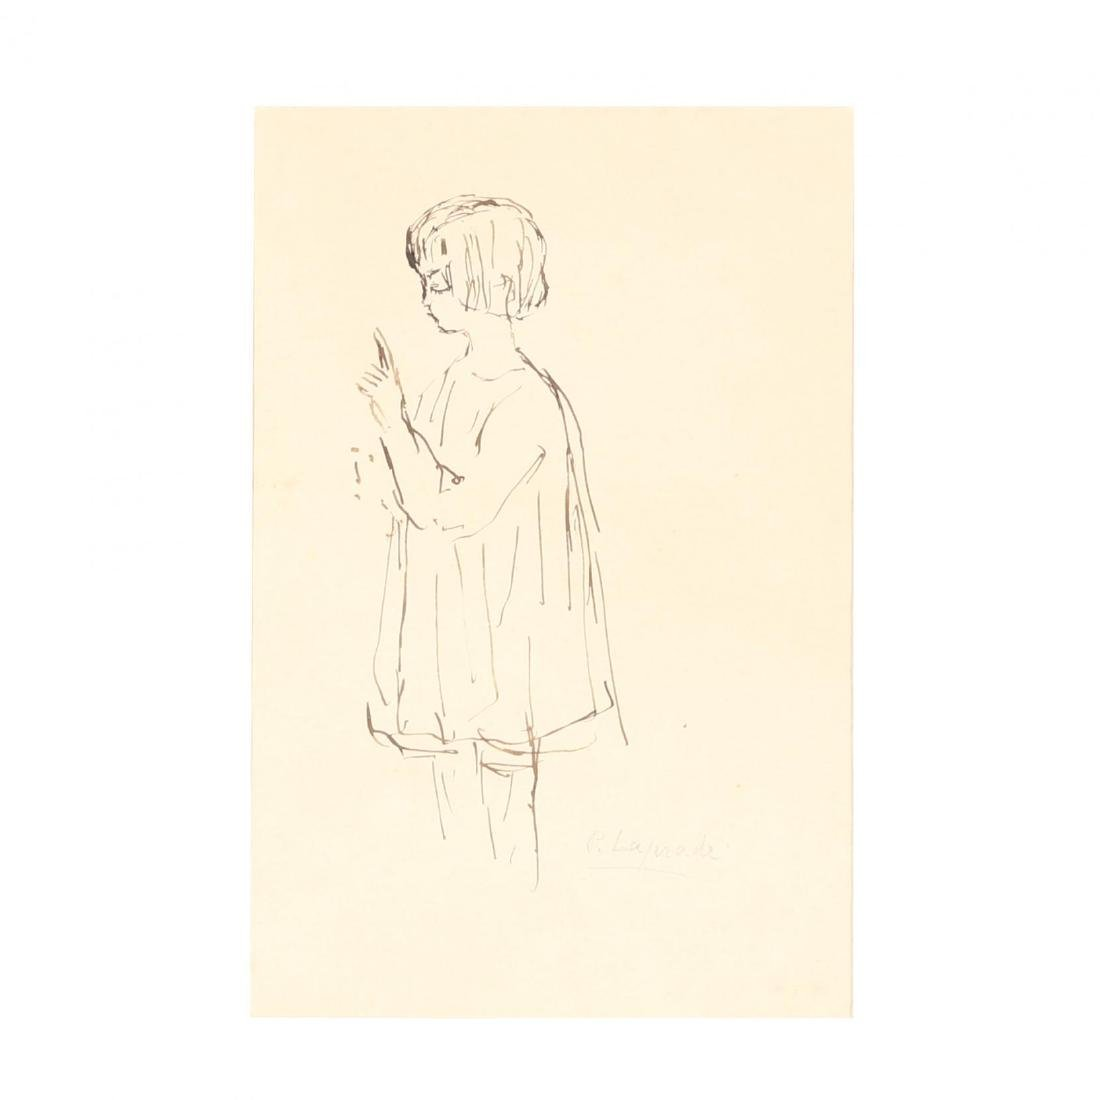 Pierre Lapadre (France, 1875-1931), Sketch of a Young